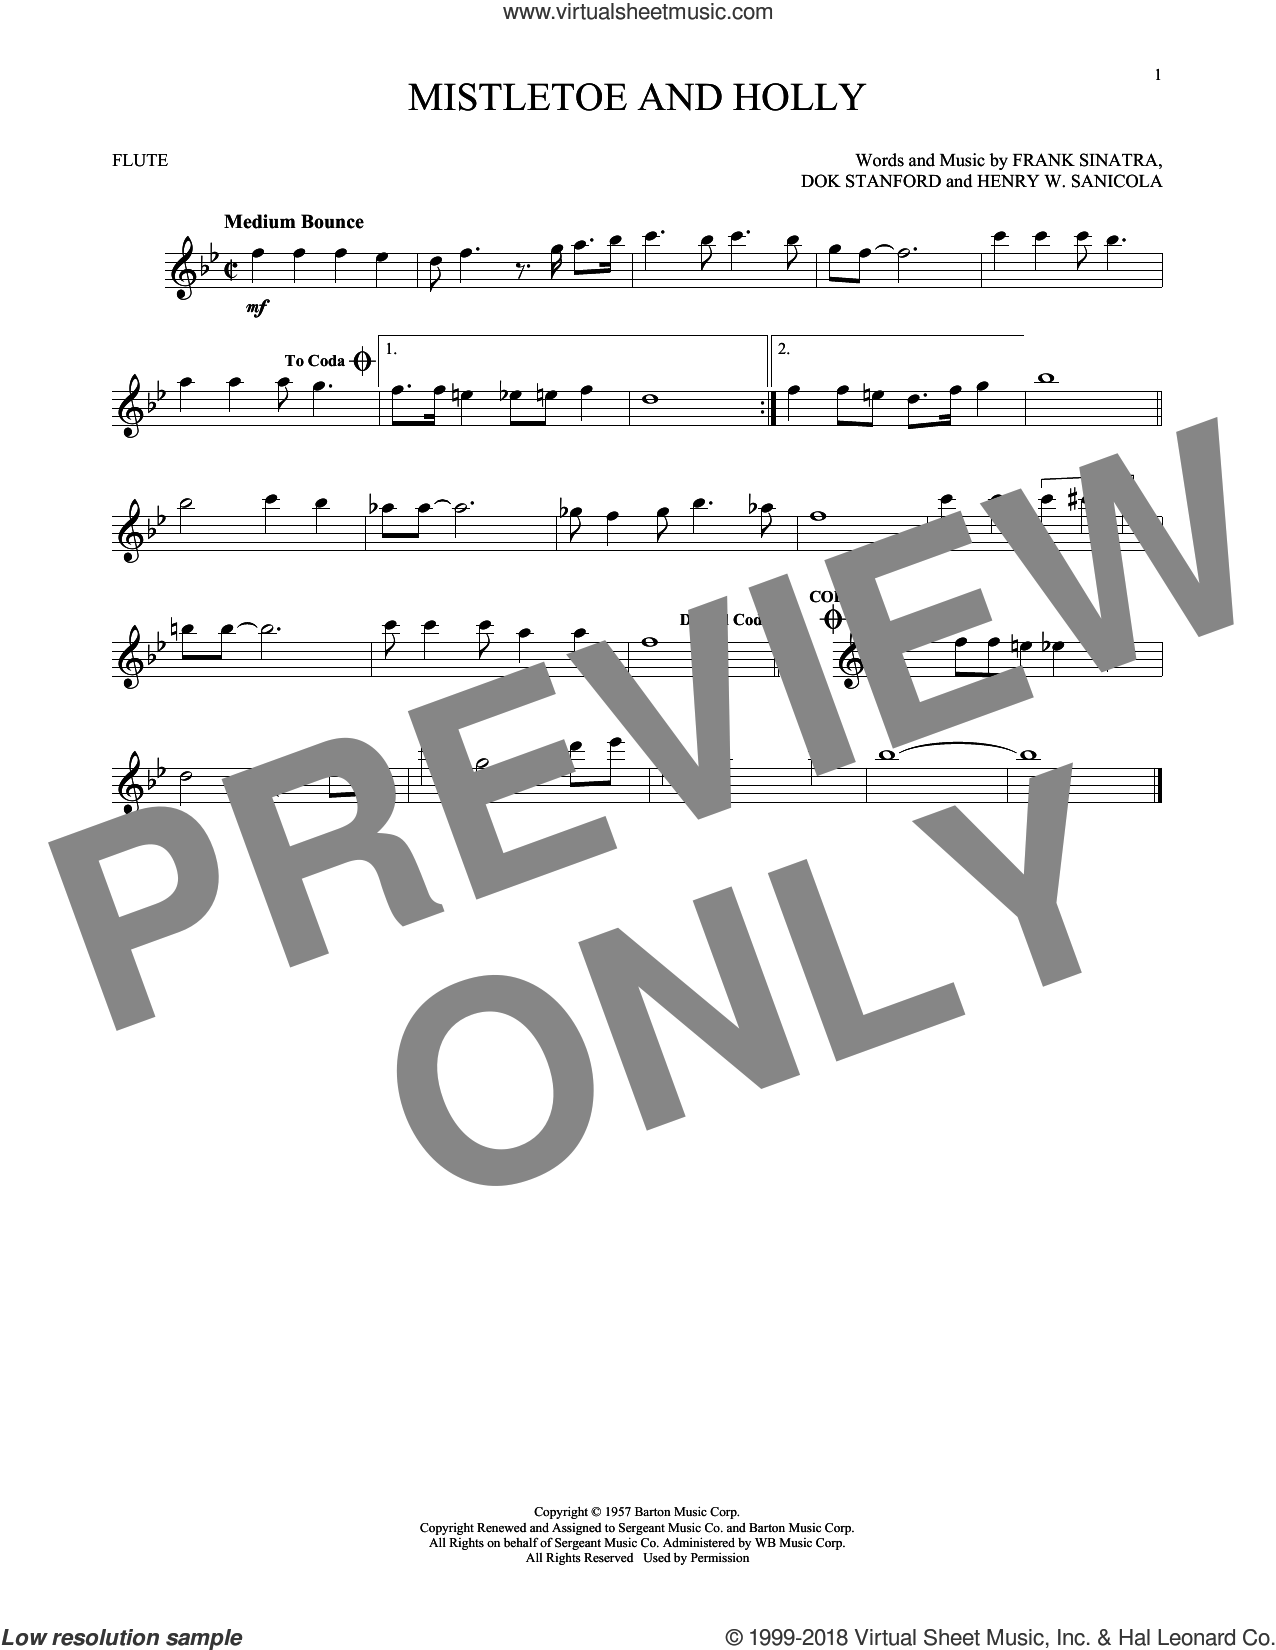 Mistletoe And Holly sheet music for flute solo by Frank Sinatra, Dok Stanford and Henry W. Sanicola, intermediate skill level